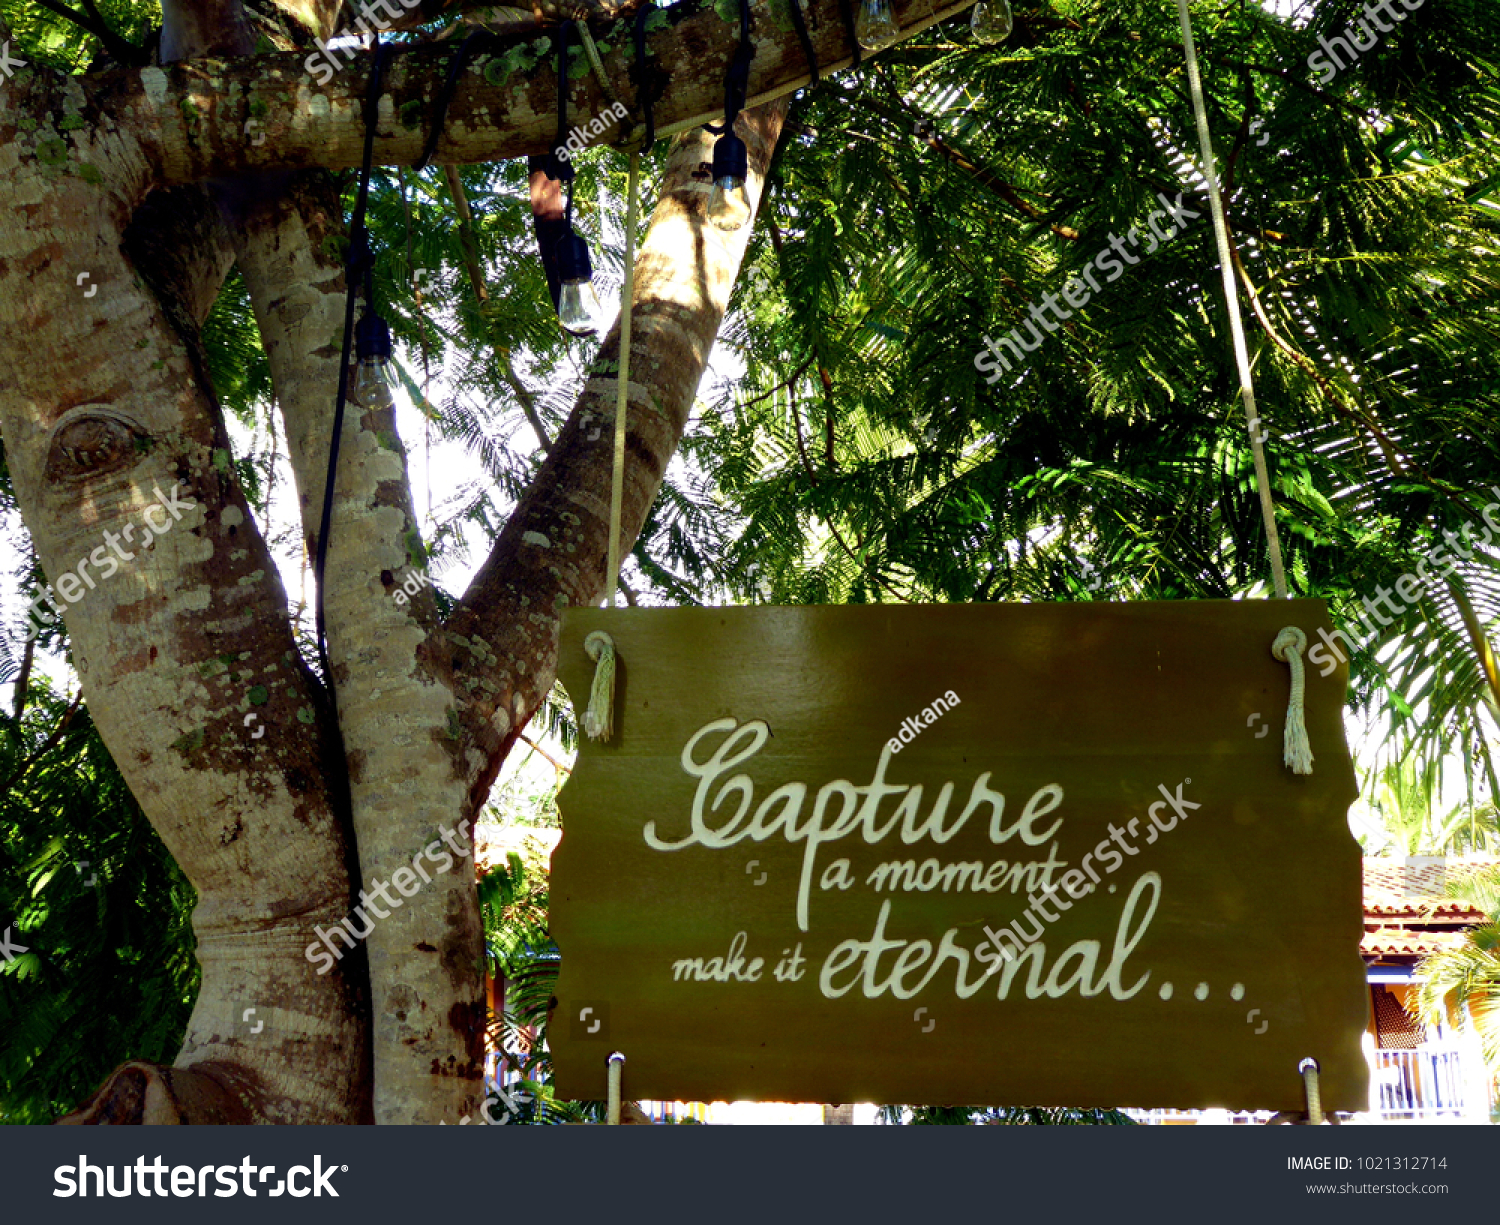 Capture a moment wooden sigh hanging in the trees with text make it eternal #1021312714